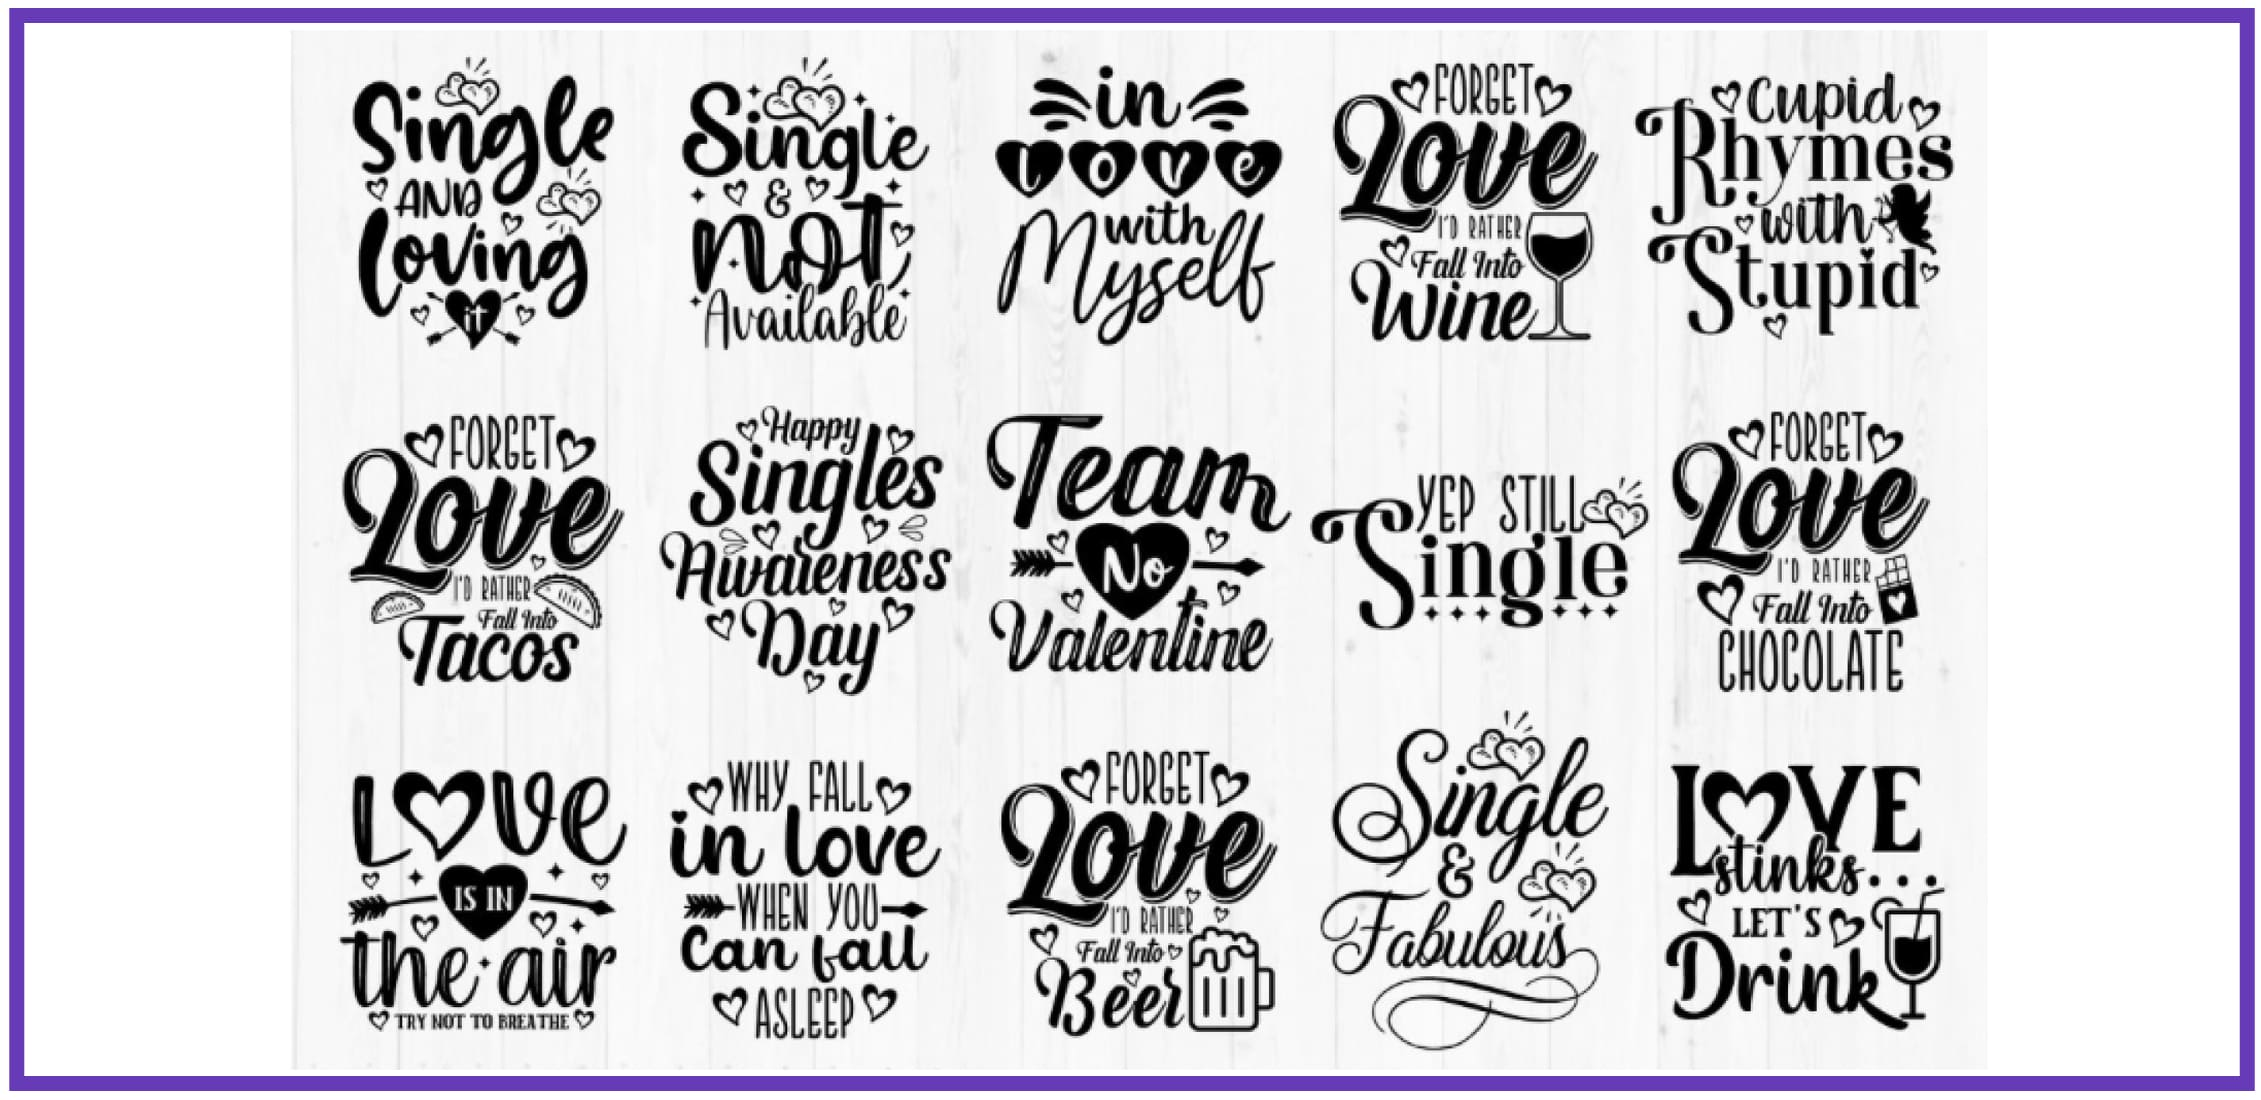 40+ Awesome Valentine's Day Quotes 2021 😍 - valentines day quotes bundle 4